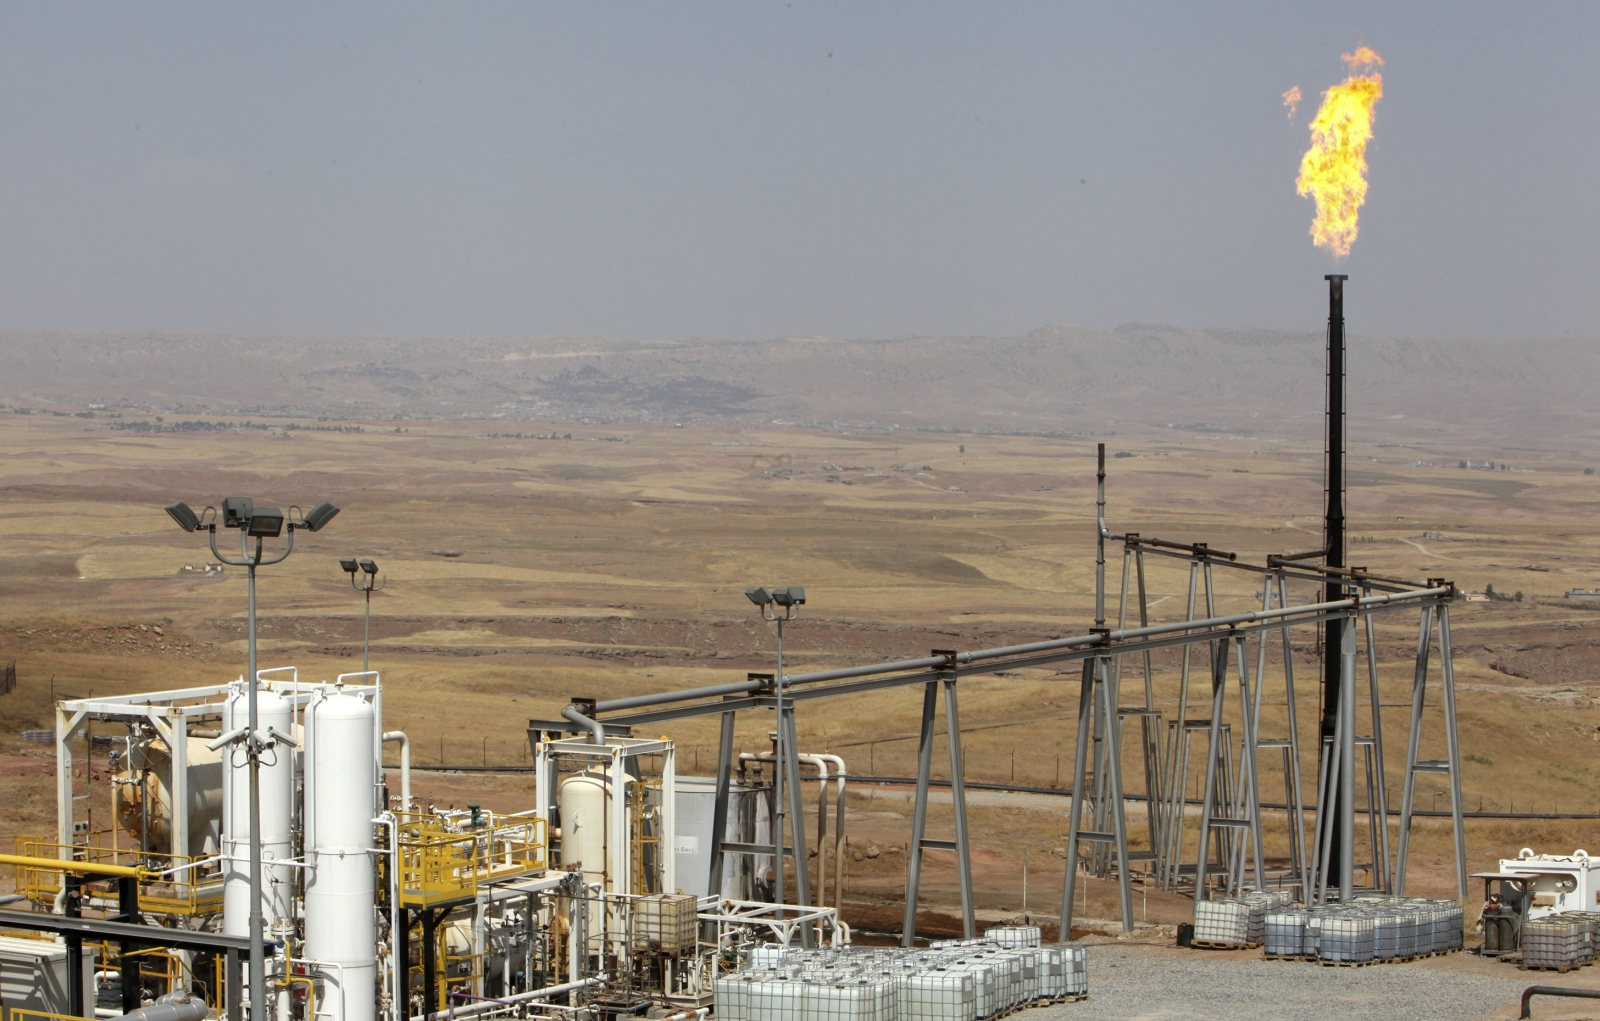 A flame rises from a chimney at Taq Taq oil field in Arbil, in Iraq's Kurdistan region